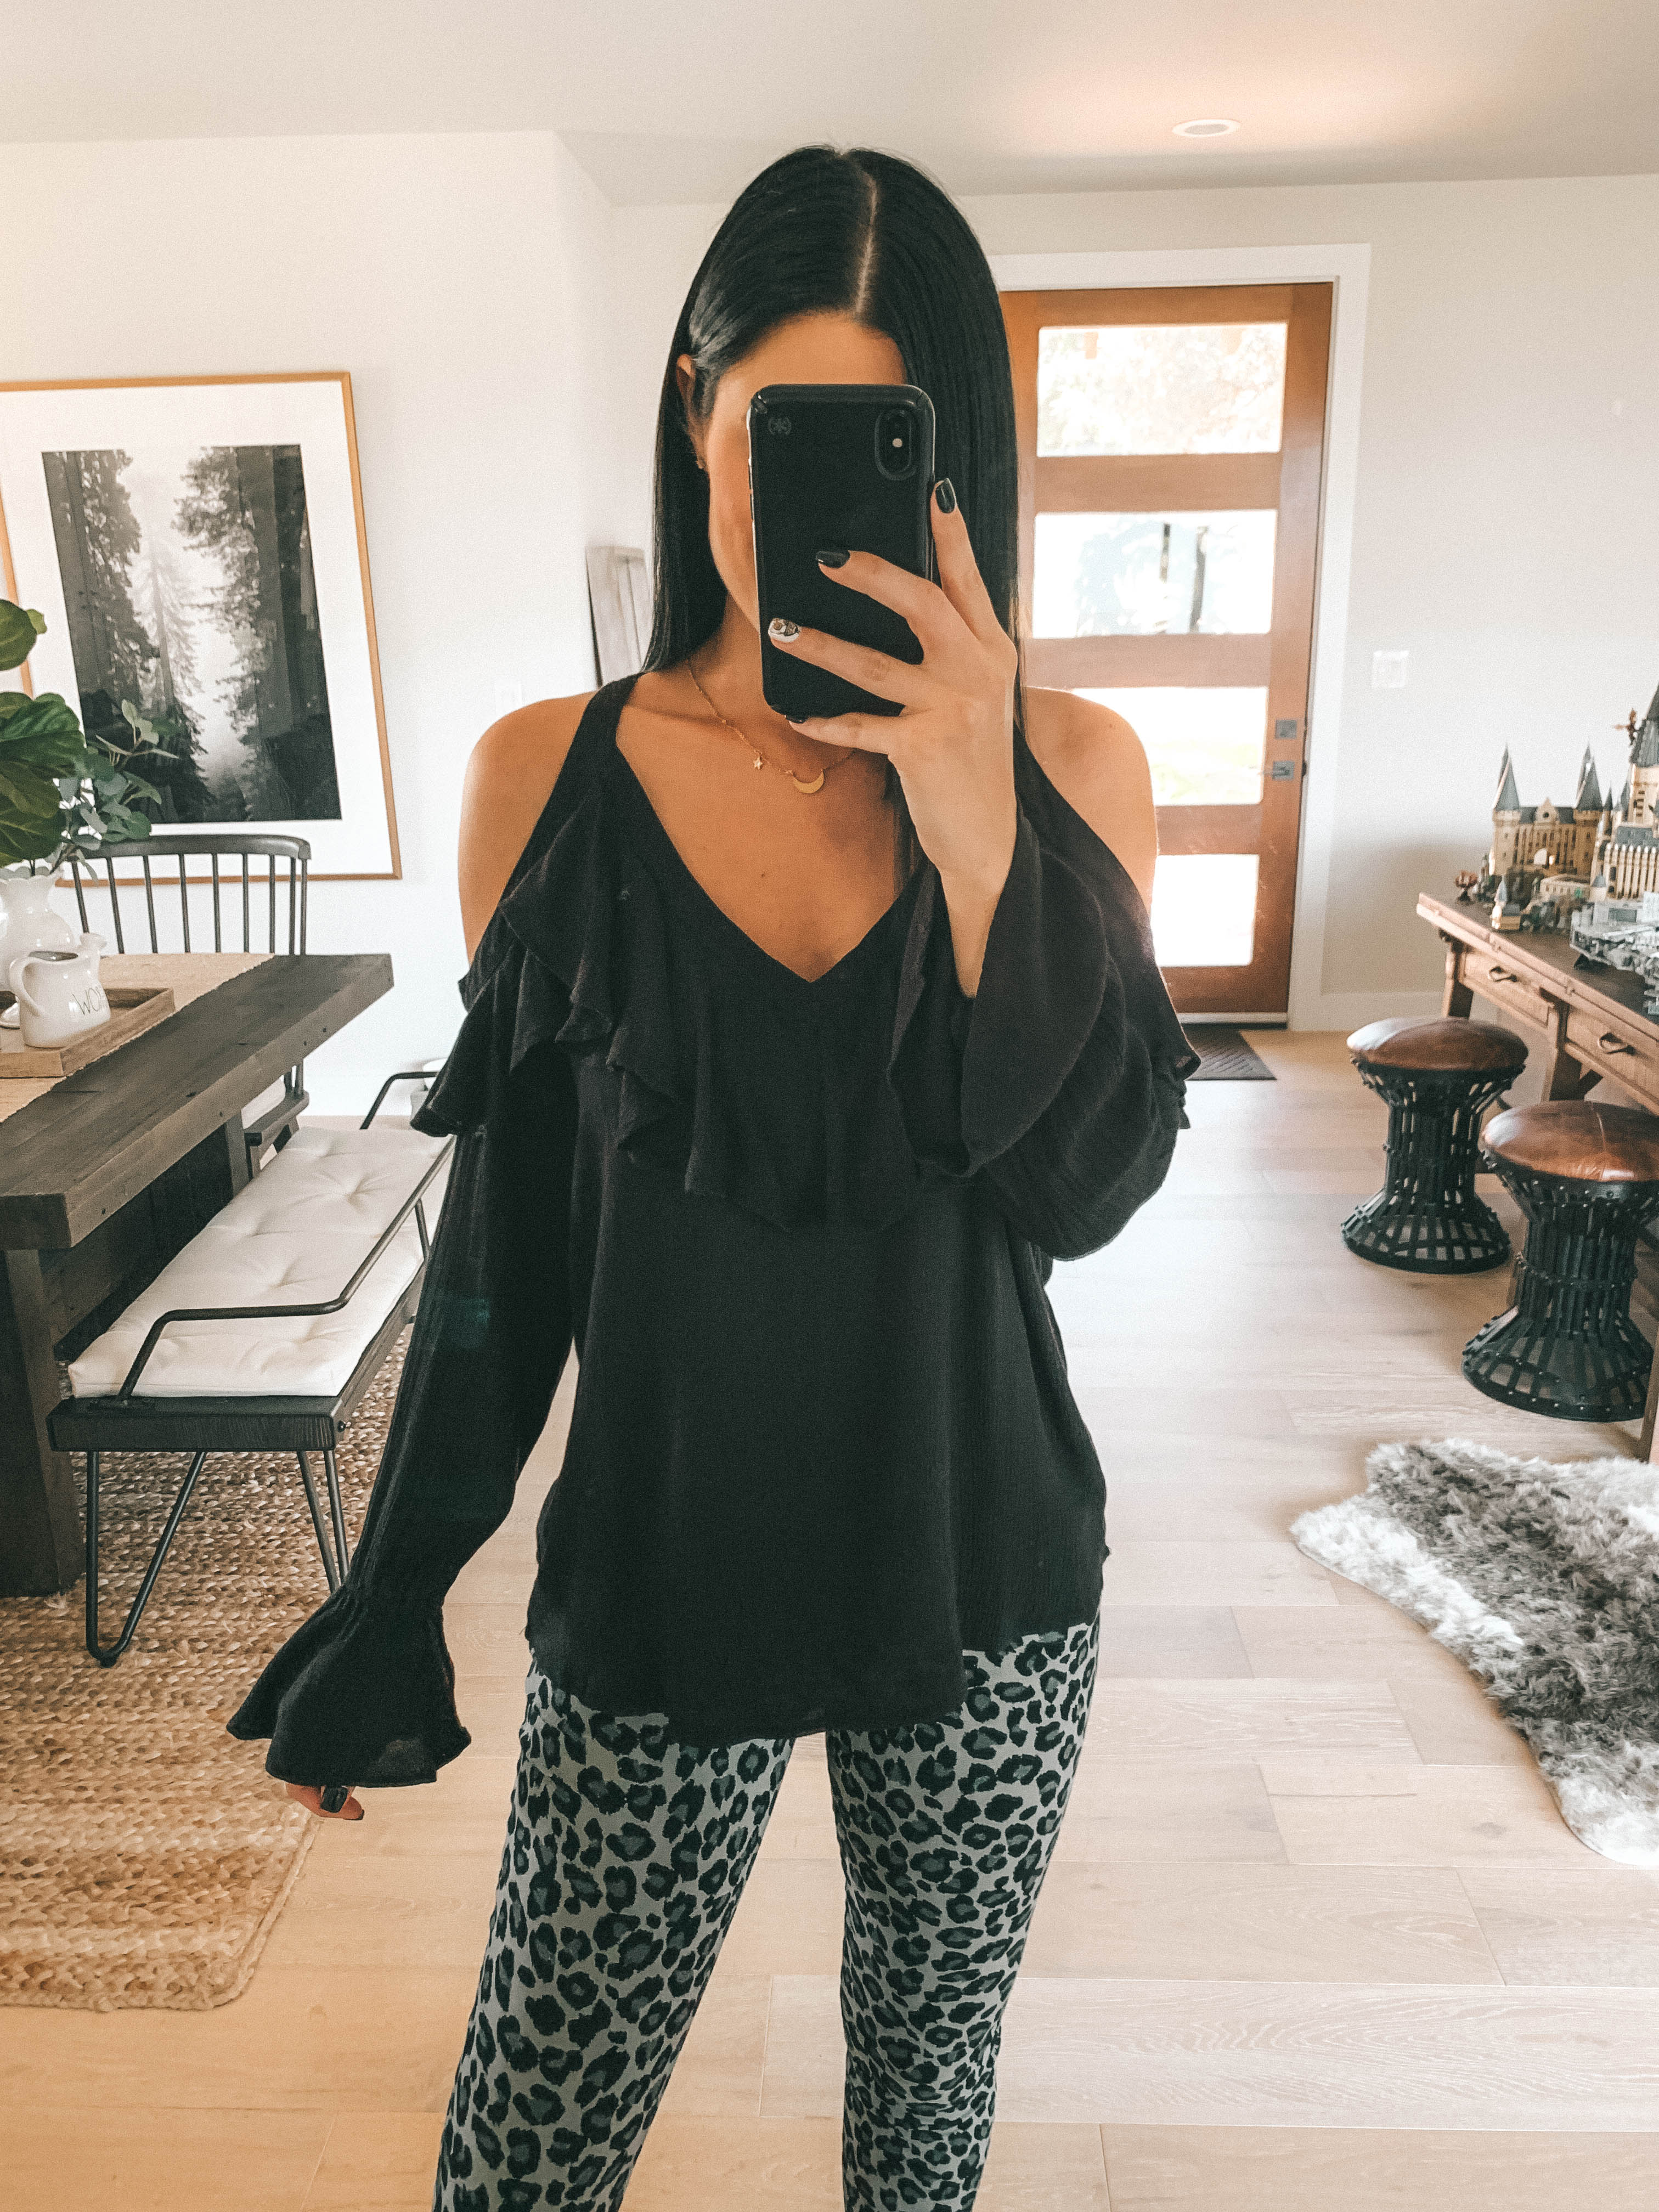 7 Affordable Fall Outfits from Walmart by popular Austin fashion blog, Dressed to Kill: image of a woman standing inside her house and wearing a black Walmart Sofia Jeans Cold-Shoulder Ruffle Neck Woven Top and Sofia Jeans Sofia Skinny Leopard Print Mid Rise Stretch Ankle Jean.